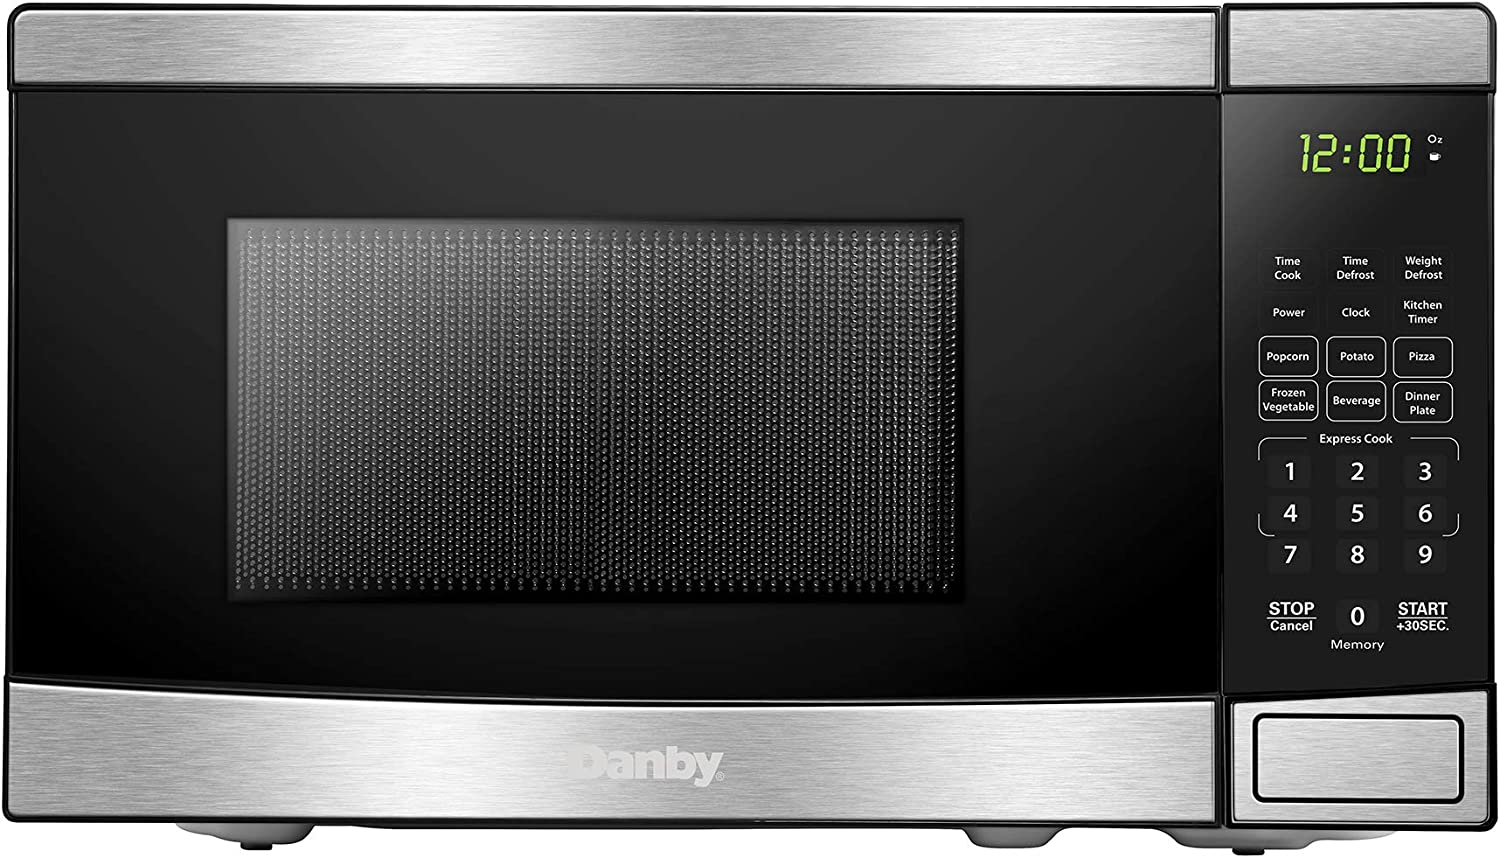 Danby DBMW0721BBS Cheap Stainless Steel Oven